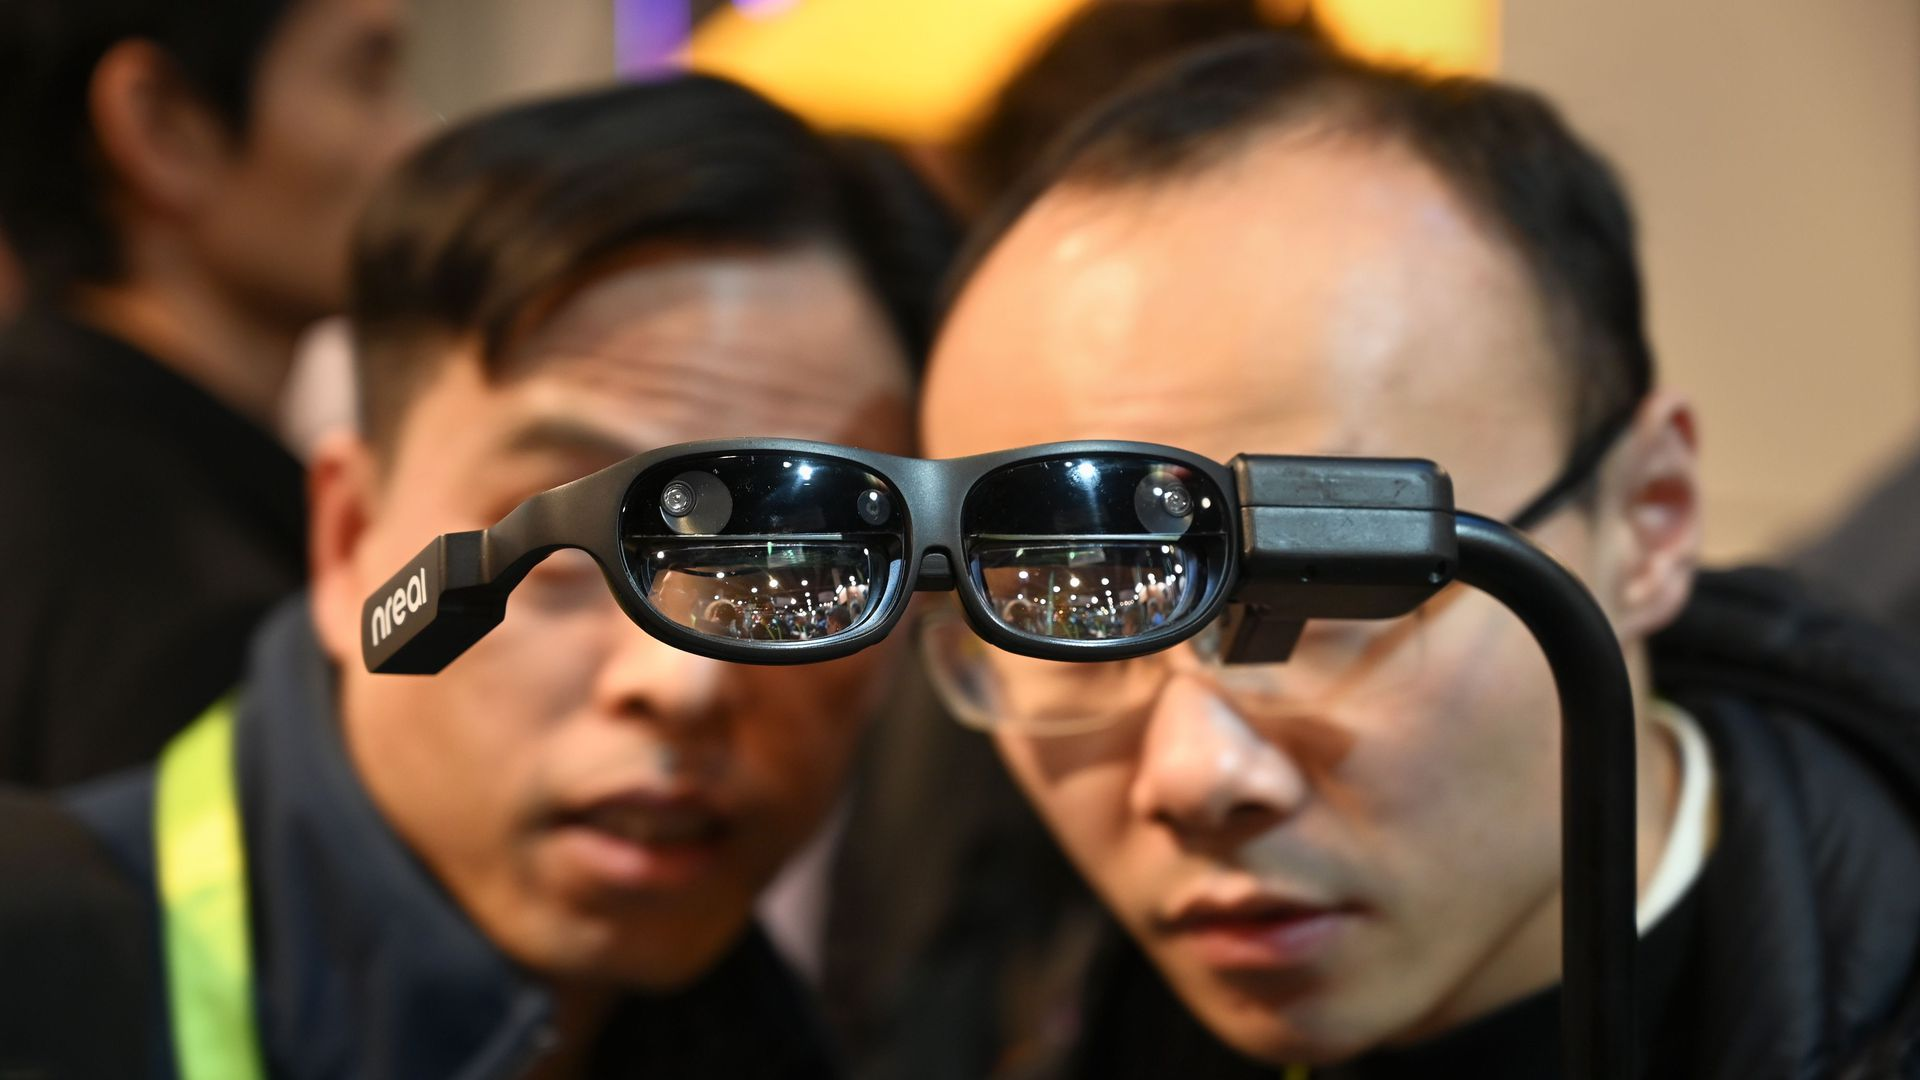 NReal augmented reality (AR) glasses, on the last day of CES 2019,